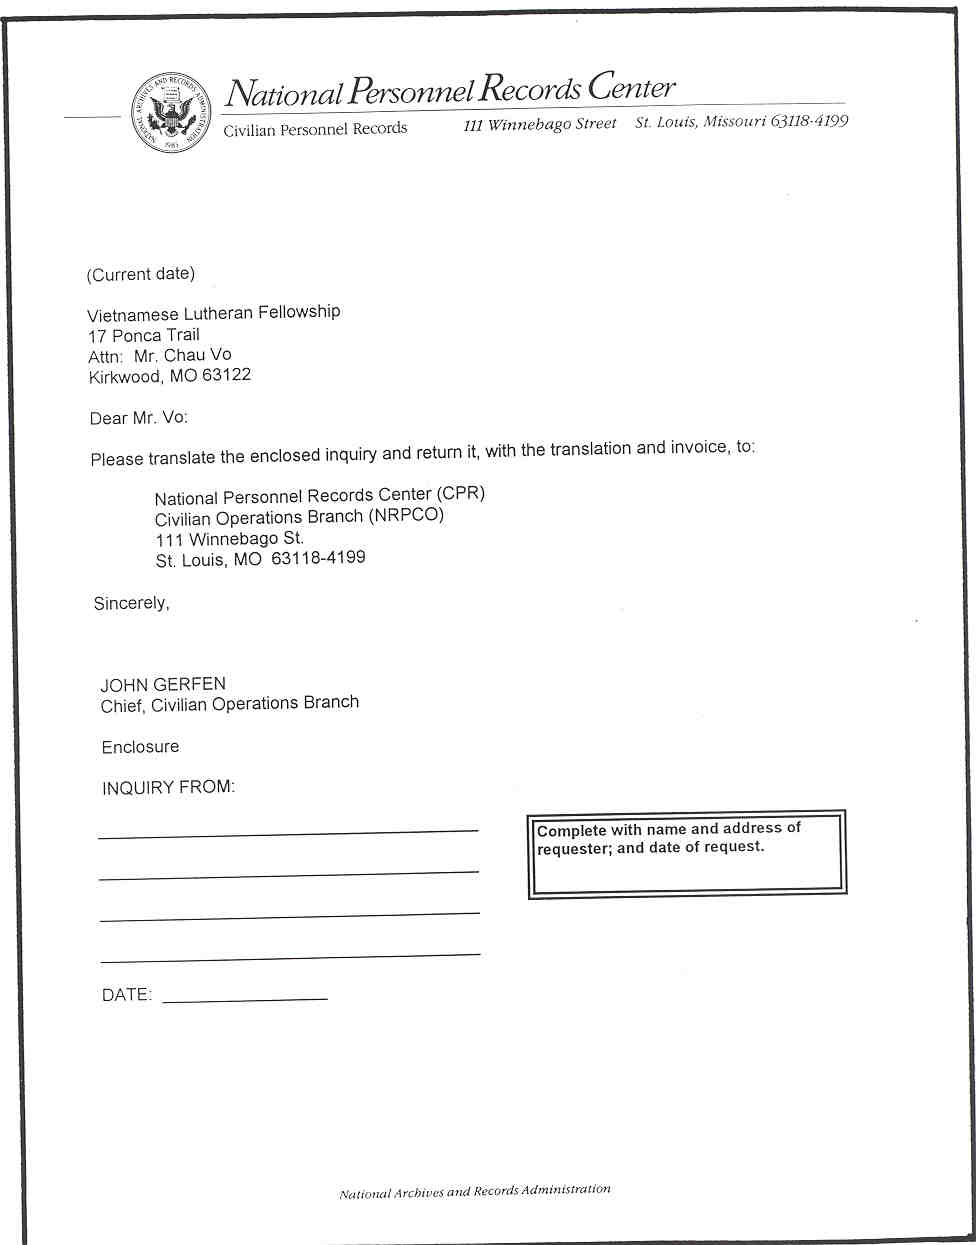 Sample letter of transmittal requesting translation from source – Transmittal Letter Template